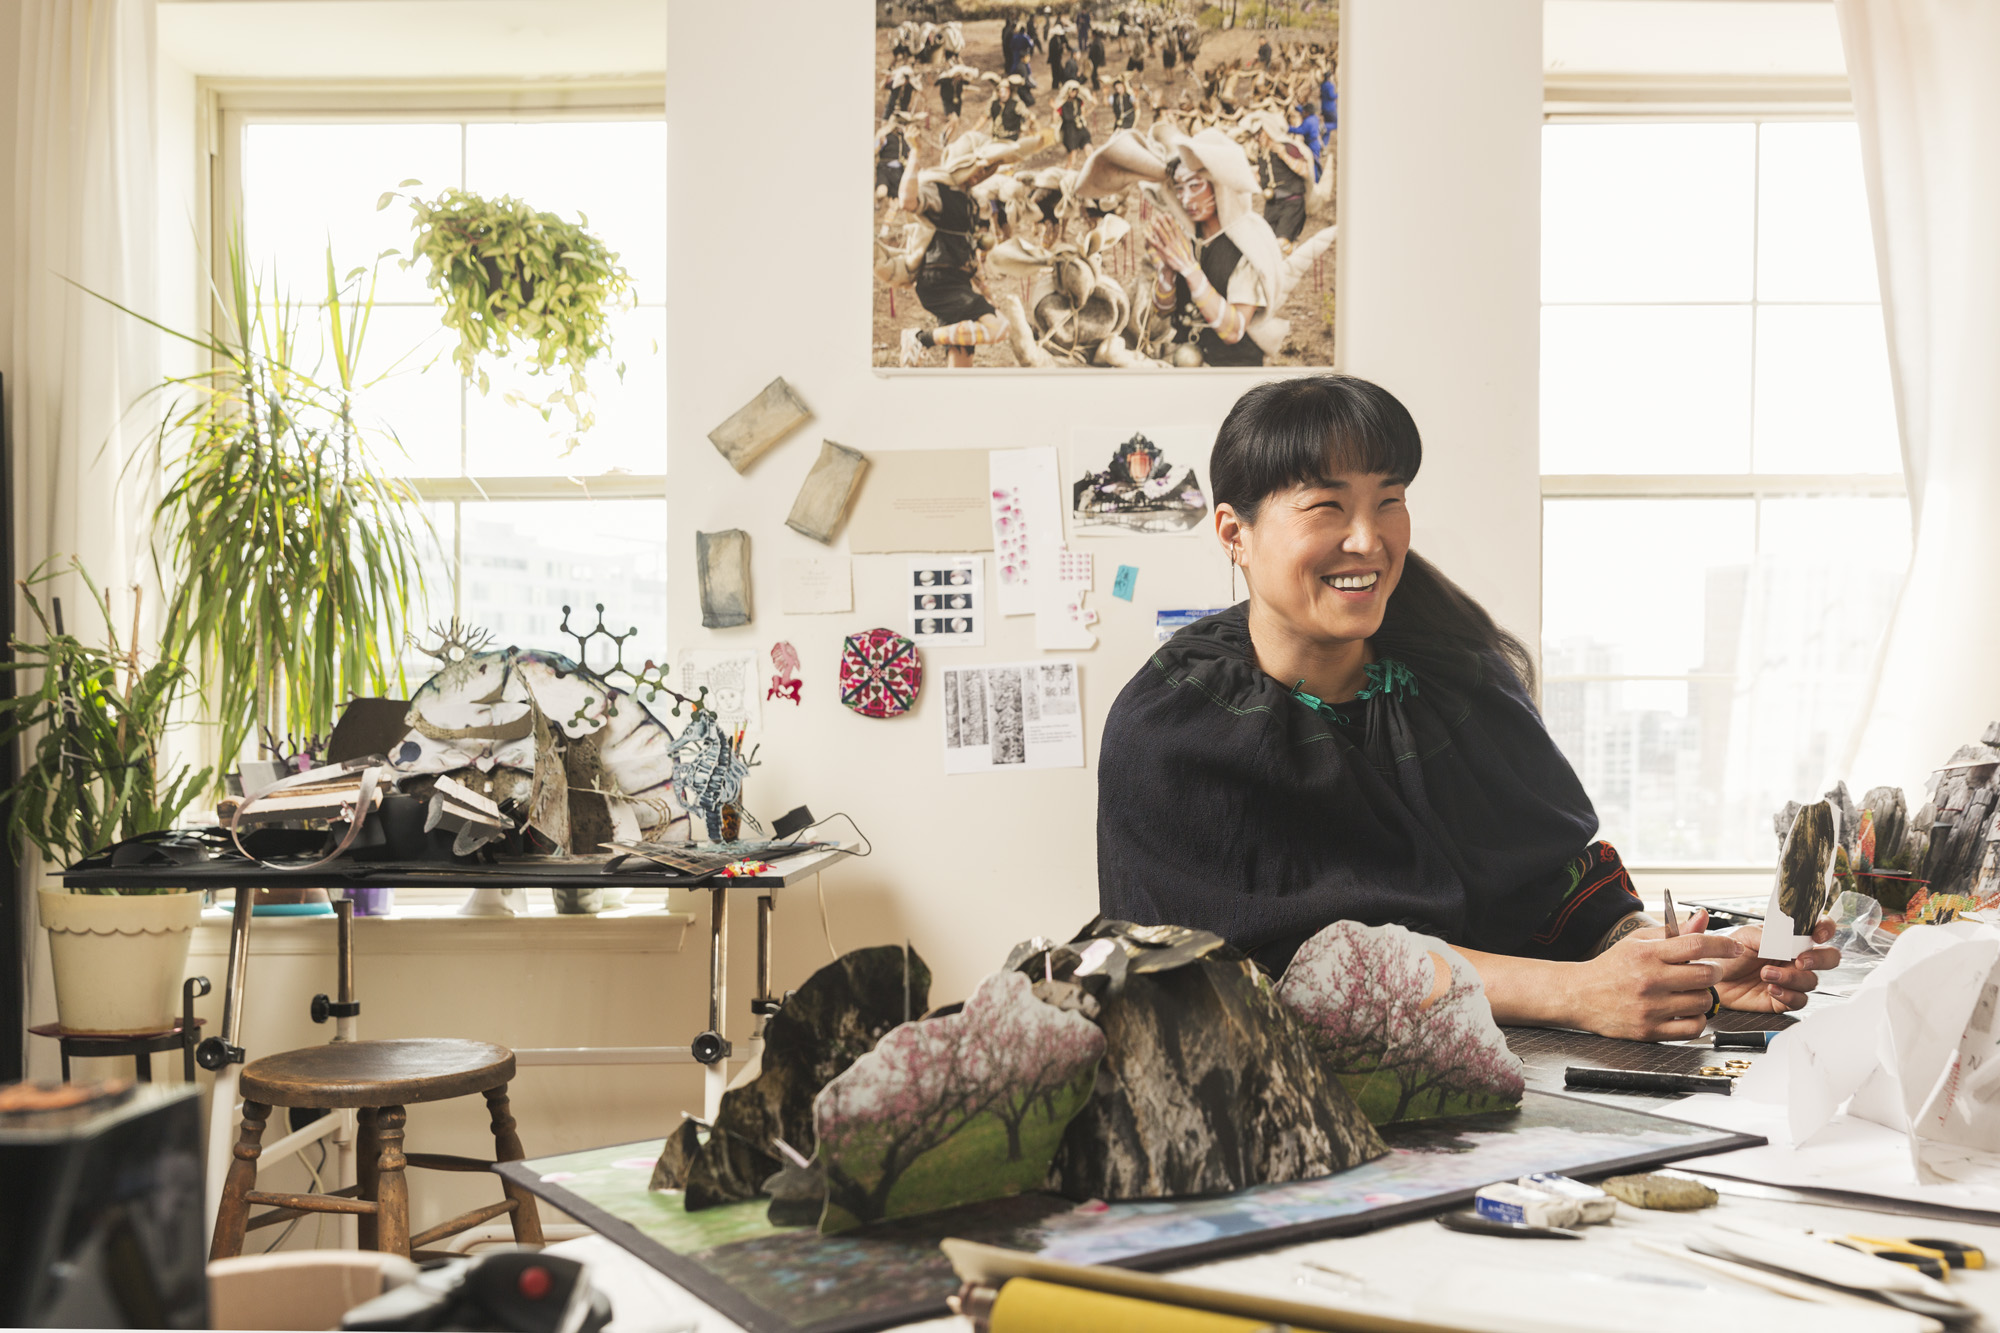 cc2015015 - Artist Colette Fu photographed for American Craft Magazine